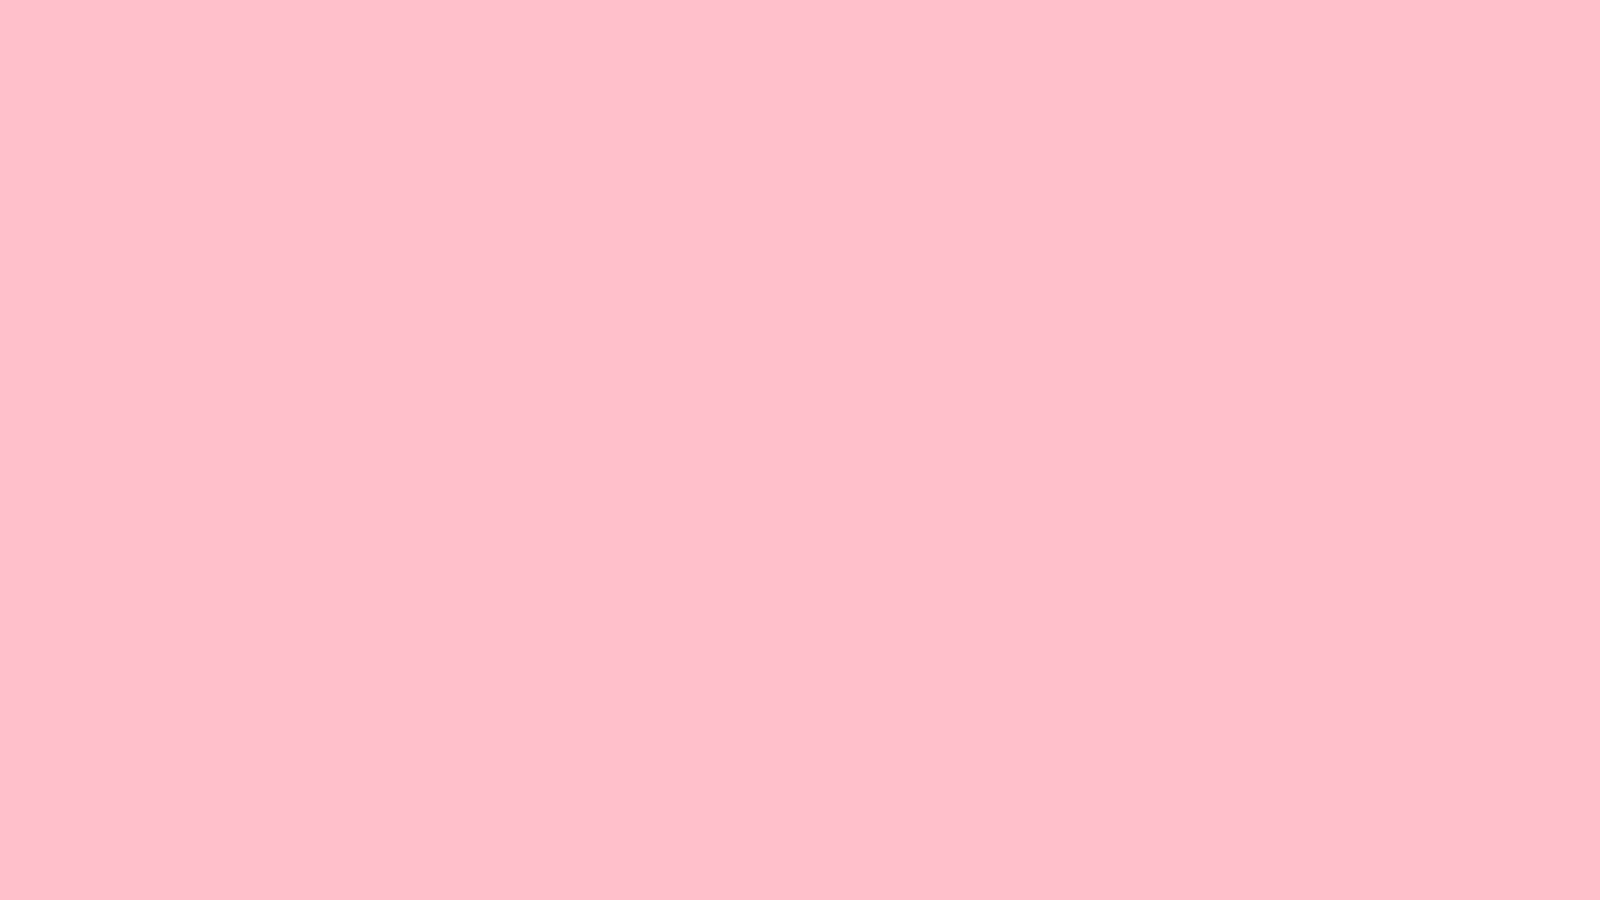 1600x900 Pink Solid Color Background